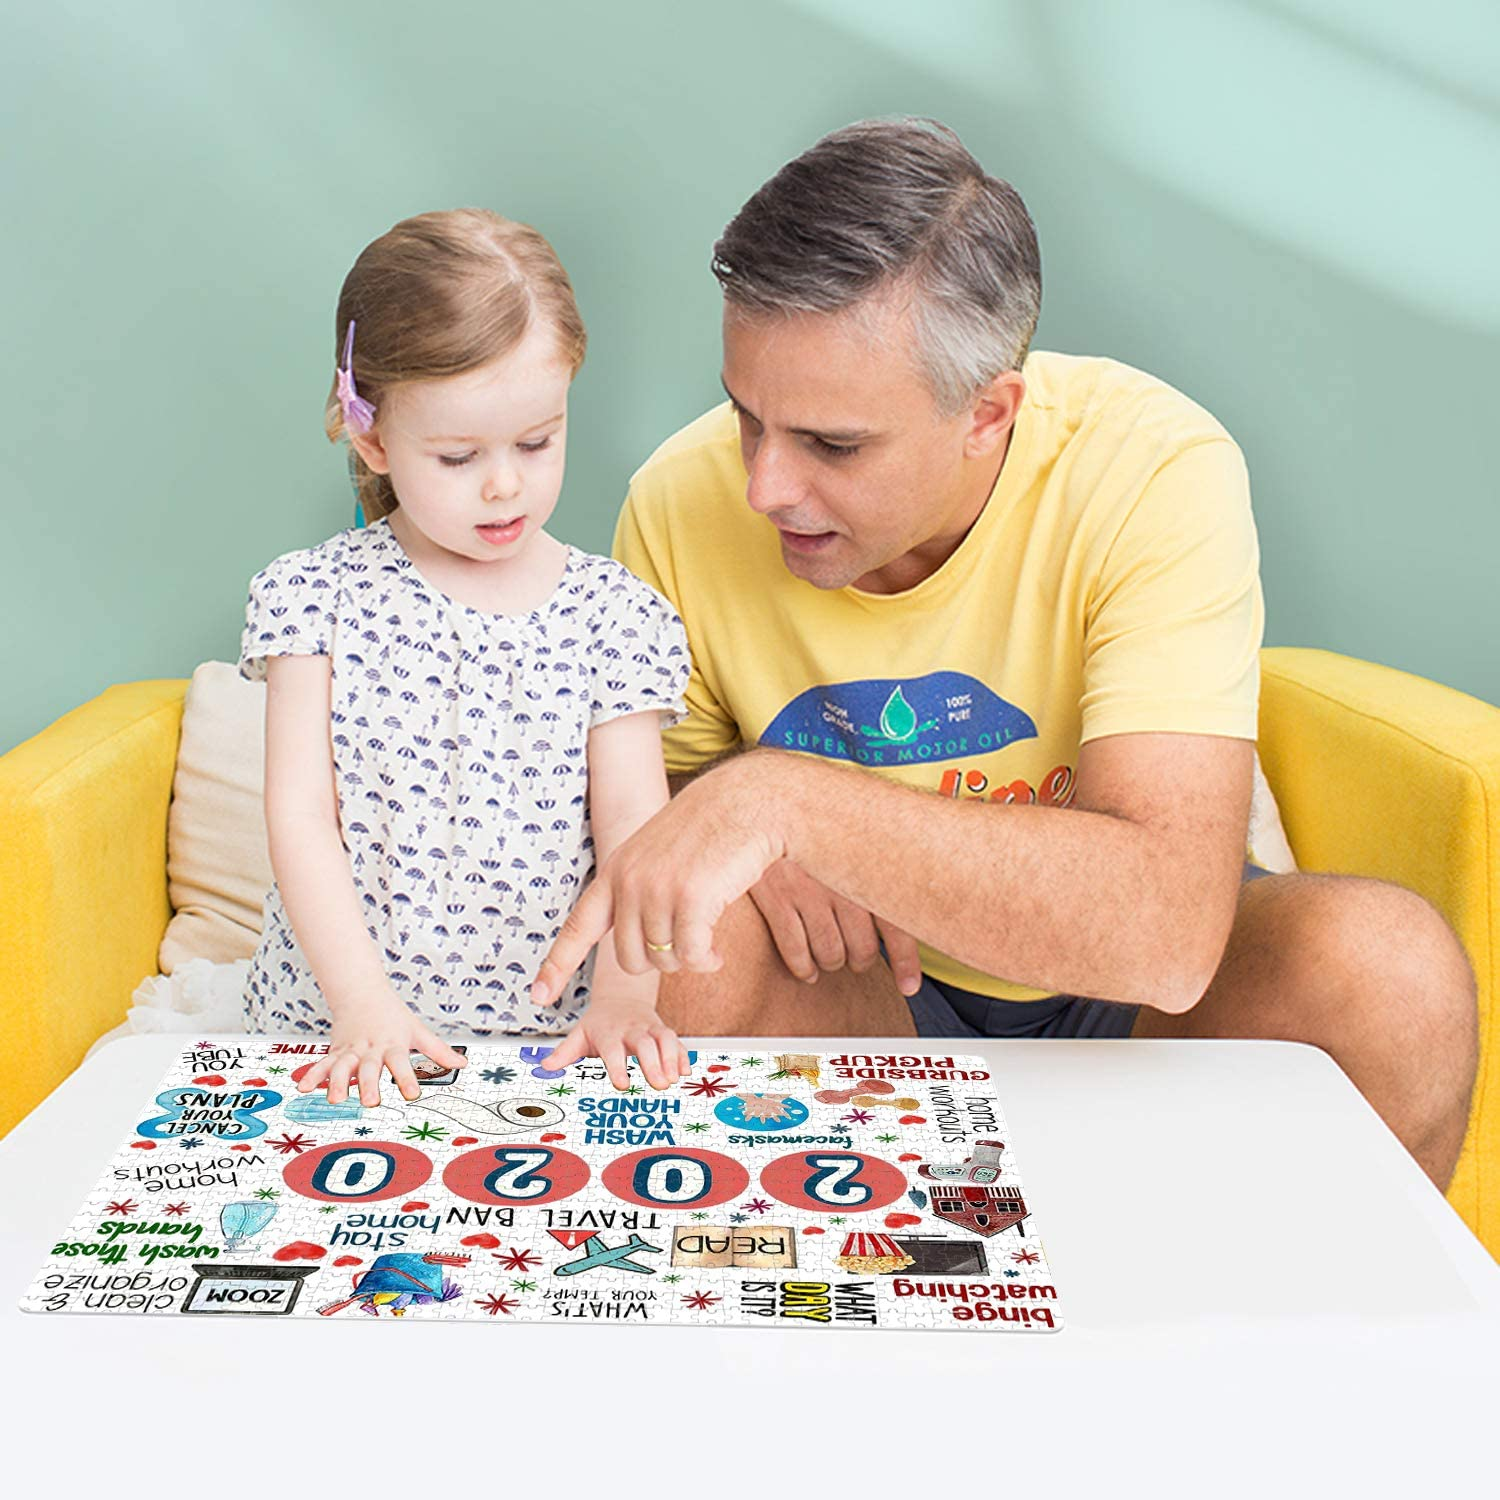 Home Decorations 2020 A Kids Kidbro 2020 Commemoration Jigsaw Puzzle 1000 Pieces for Adults 2020 Commemorative Jigsaw Puzzle for Family